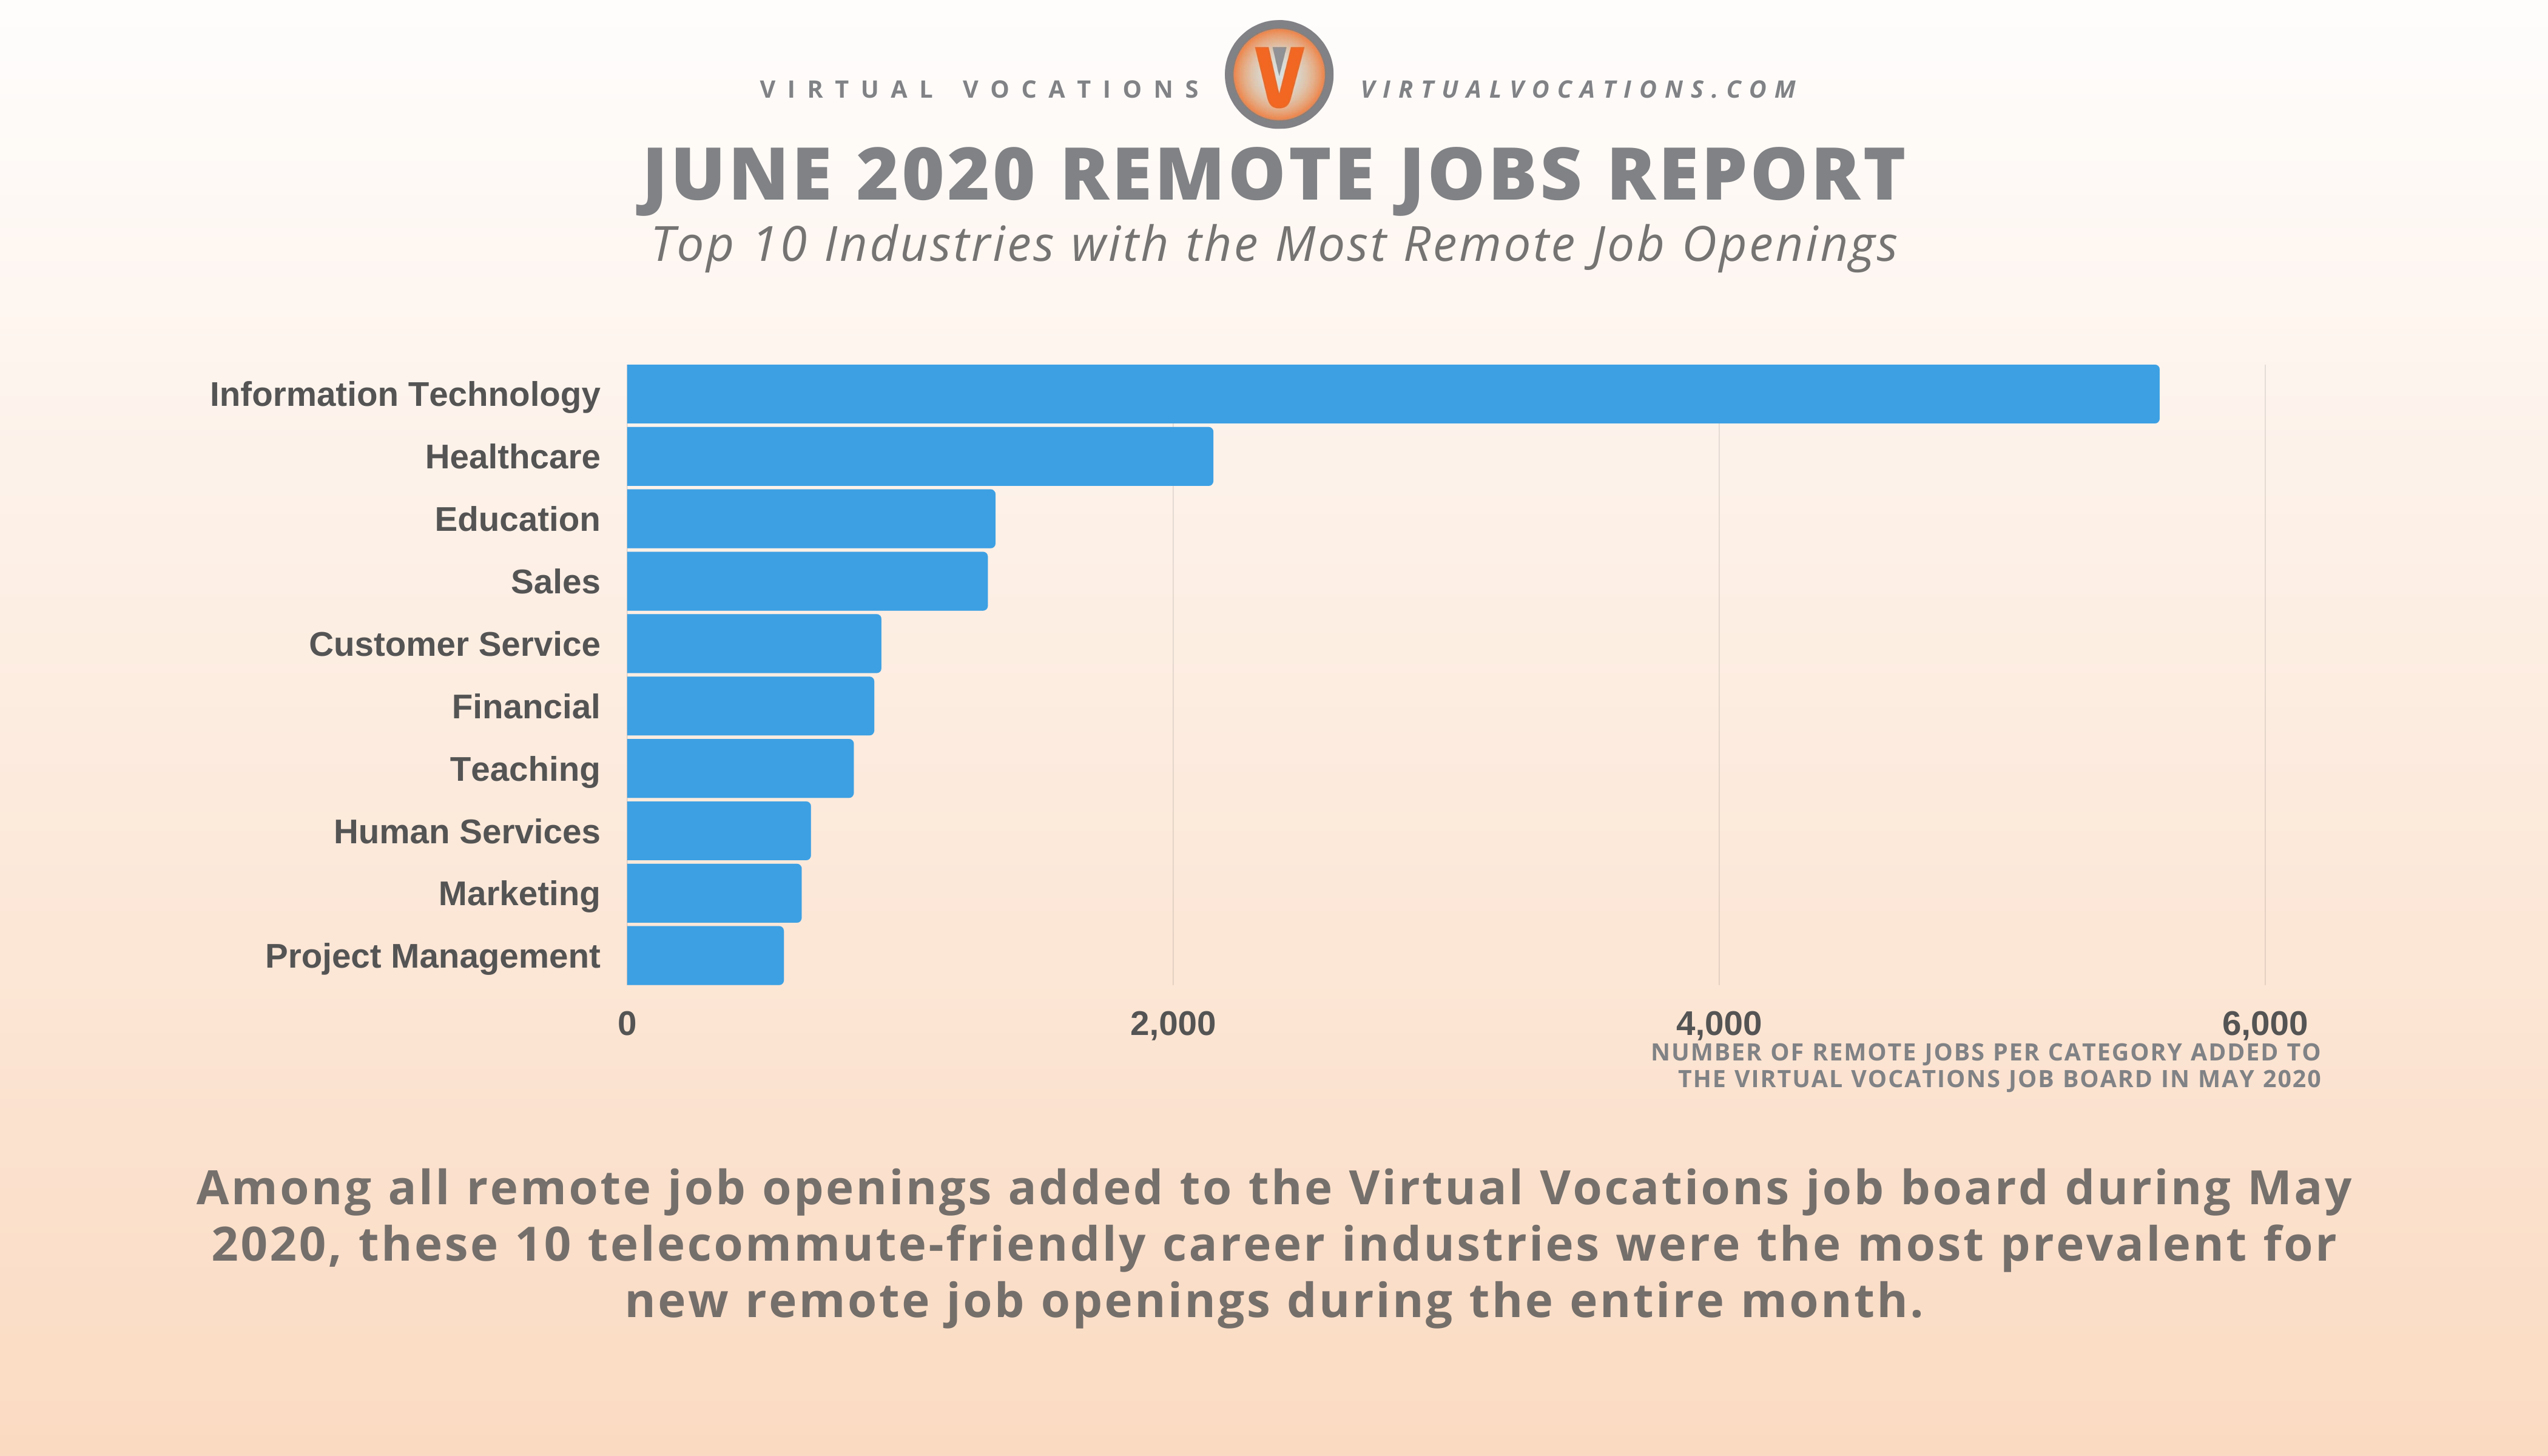 10 Industries with the Most Remote Job Openings - June 2020 Remote Jobs Report - Virtual Vocations